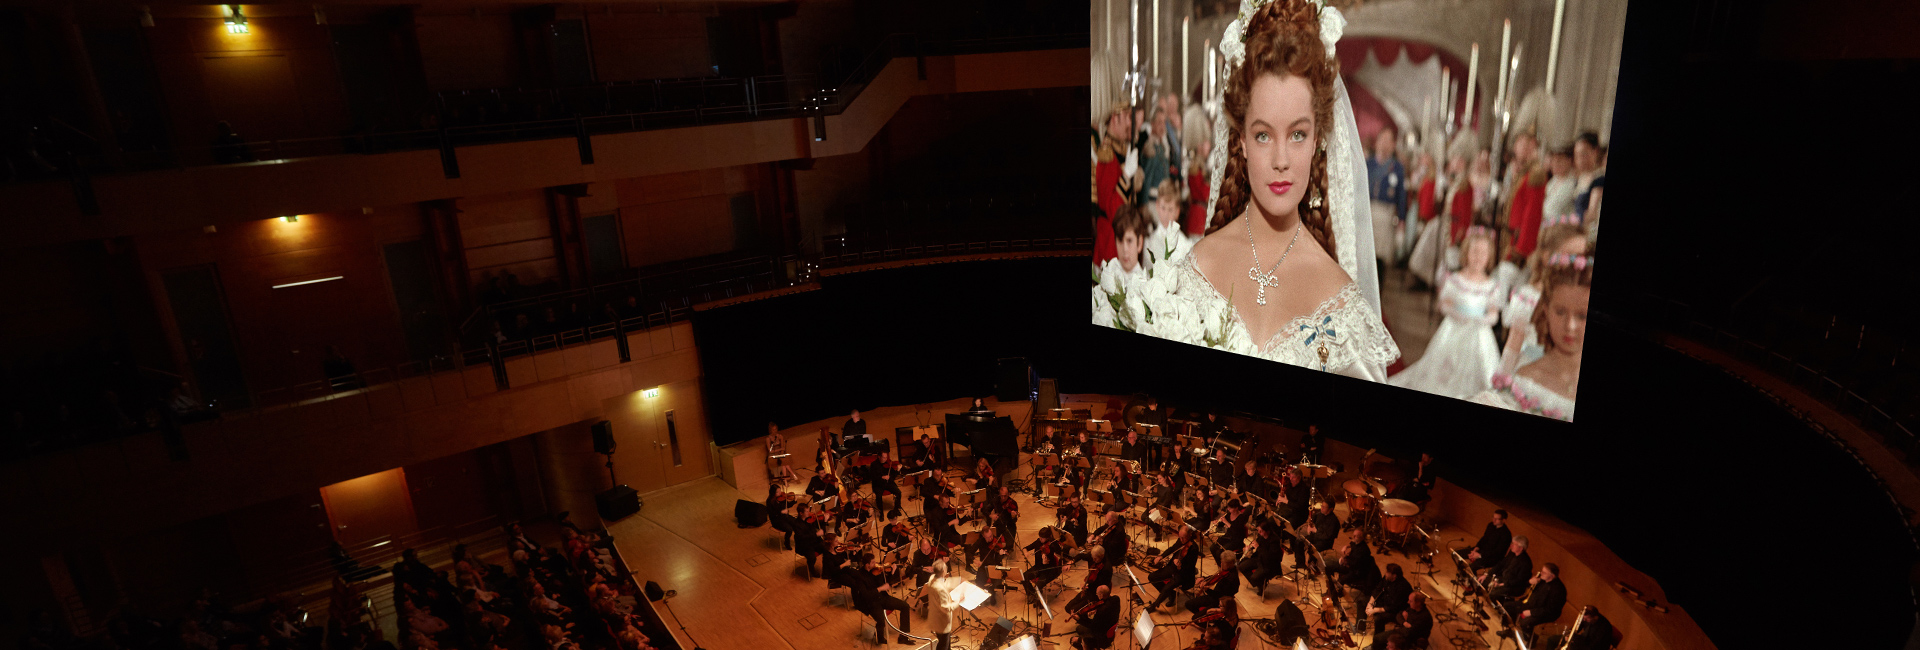 Sissi mit Live-Orchester